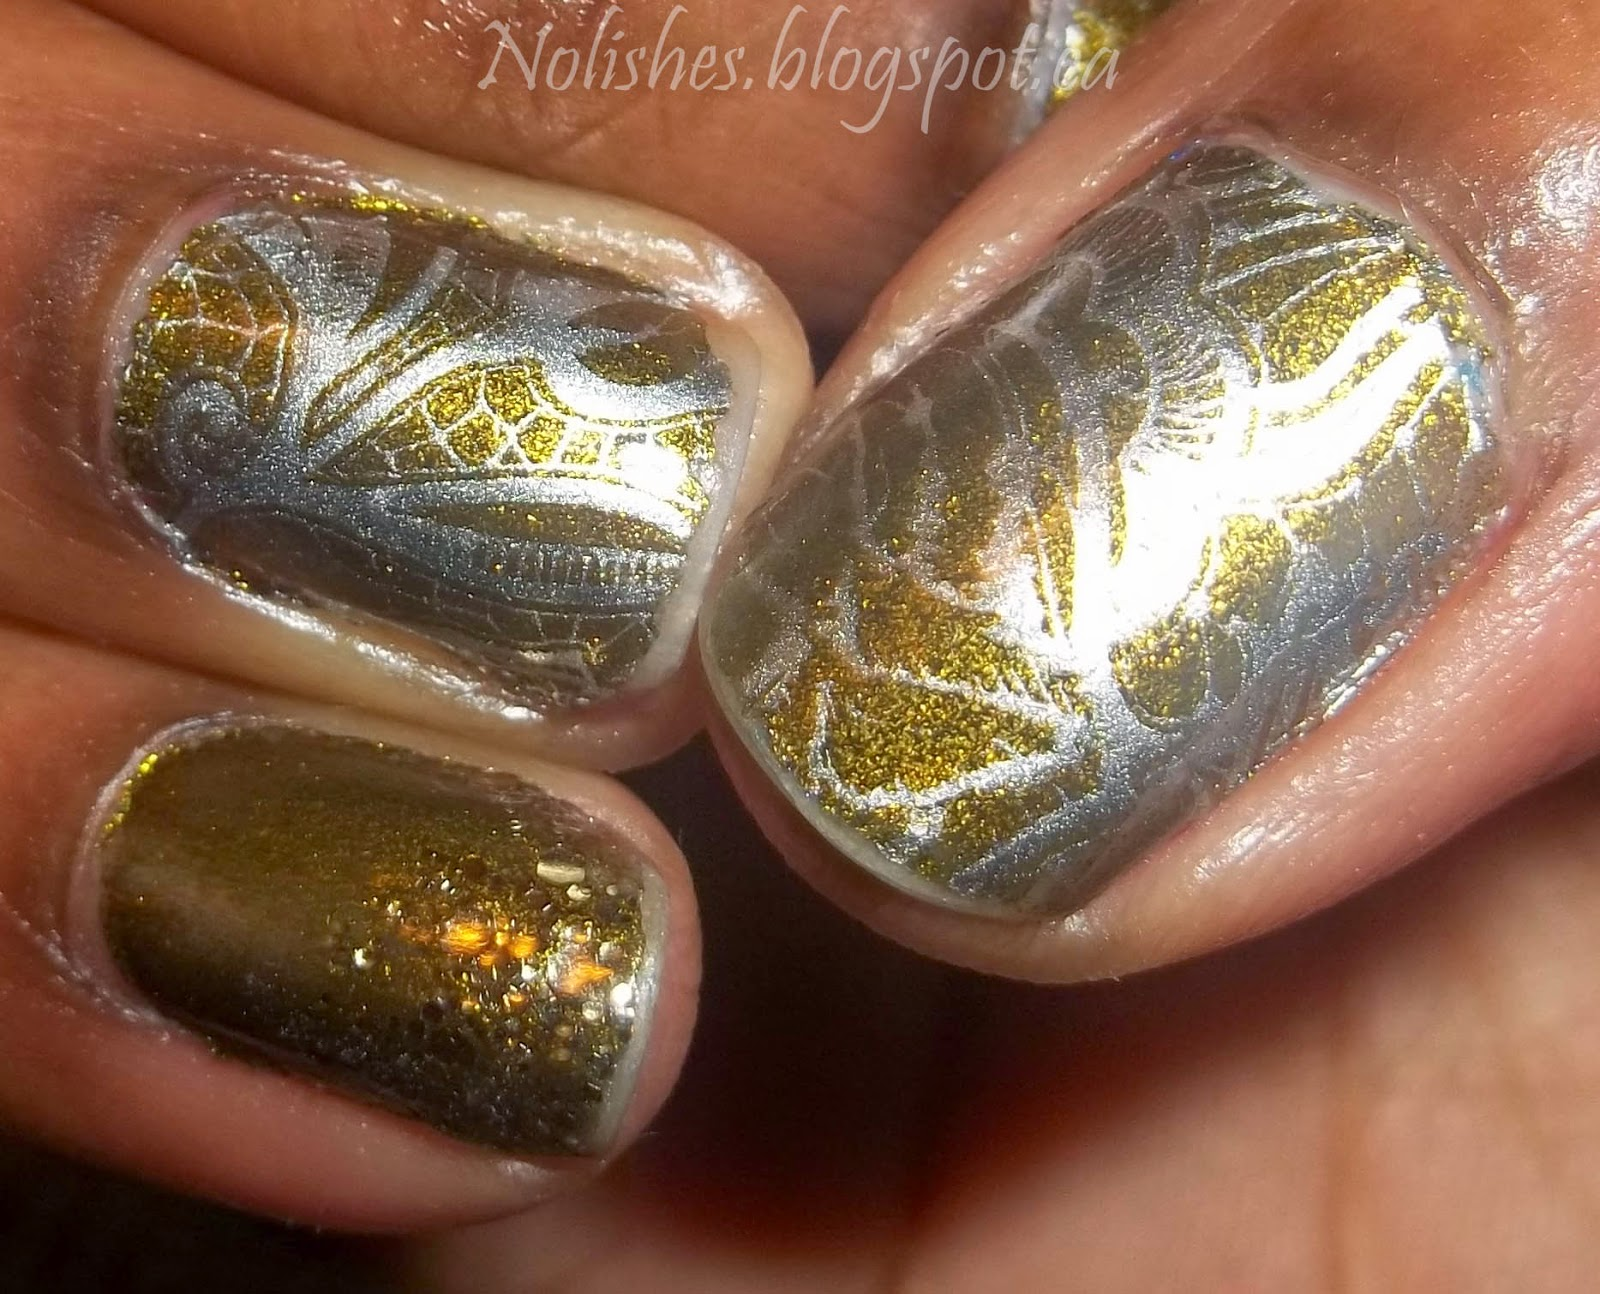 Nail stamping manicure using Butter London's 'Wallis' as a base, with thumb and ring accents stamped with silver, and a gold glitter gradient on the remaining fingers.